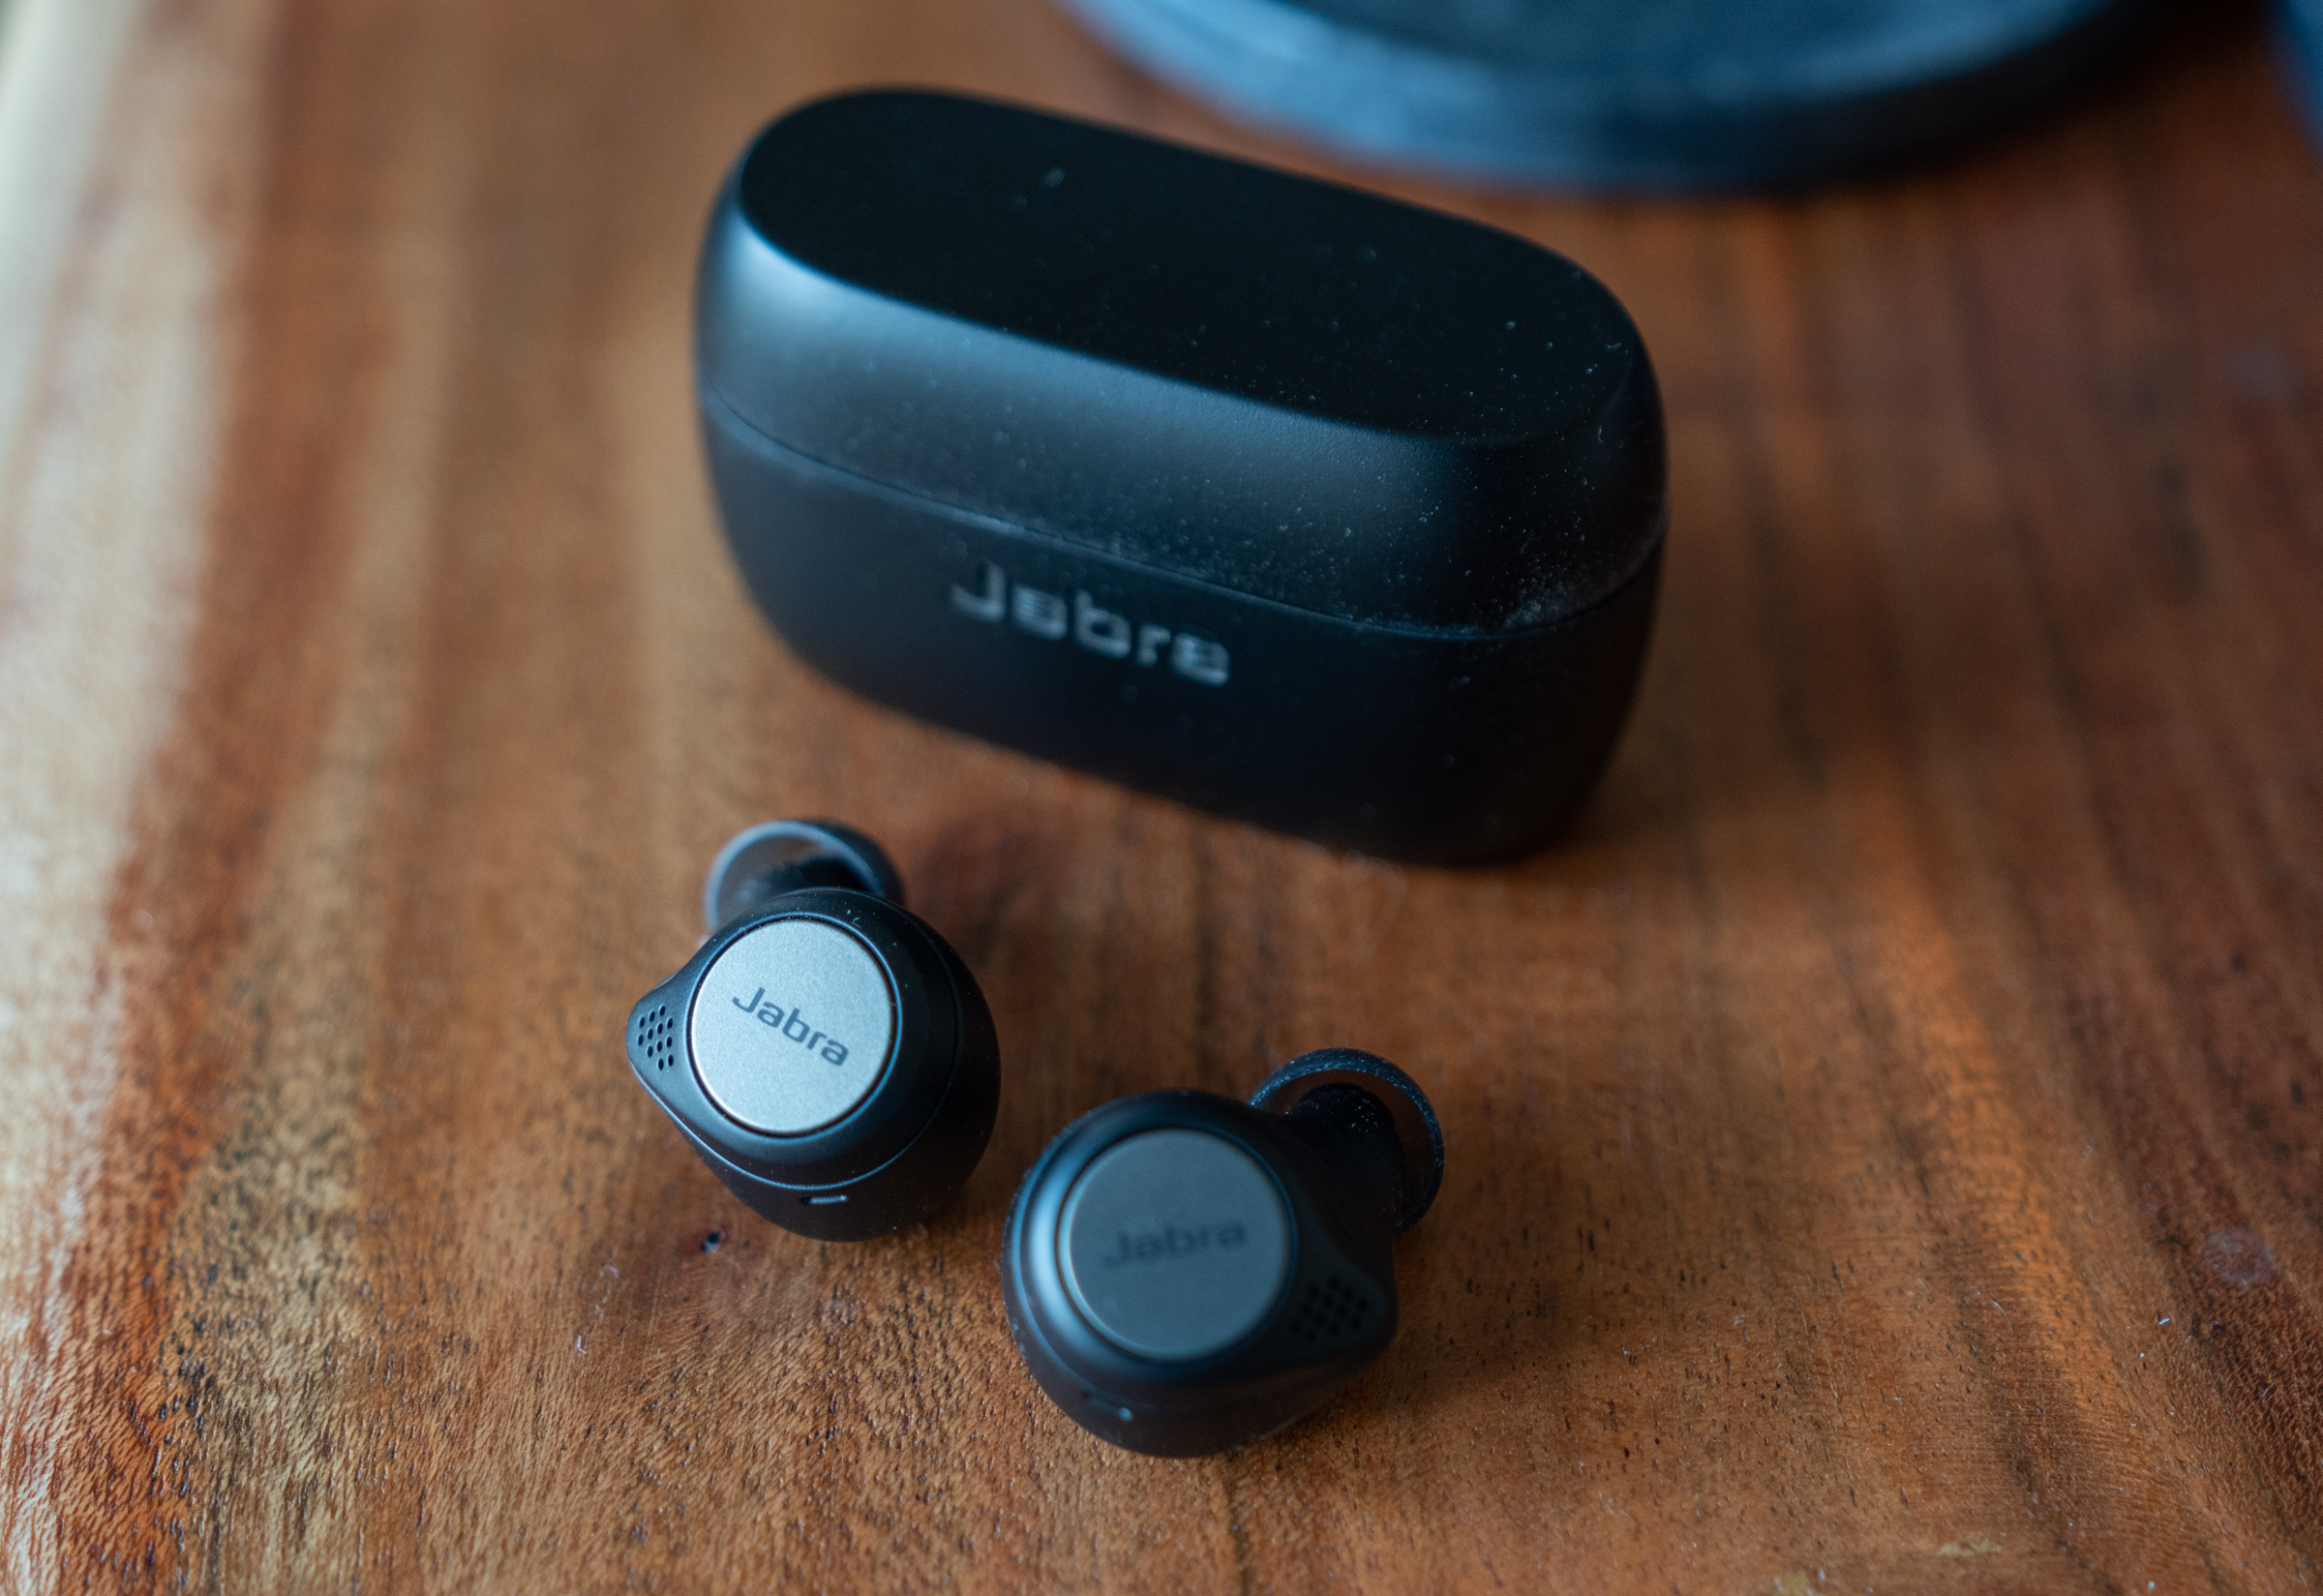 Jabra S Elite Active 75t Earbuds Offer Great Value And Sound For Both Workouts And Workdays Techcrunch